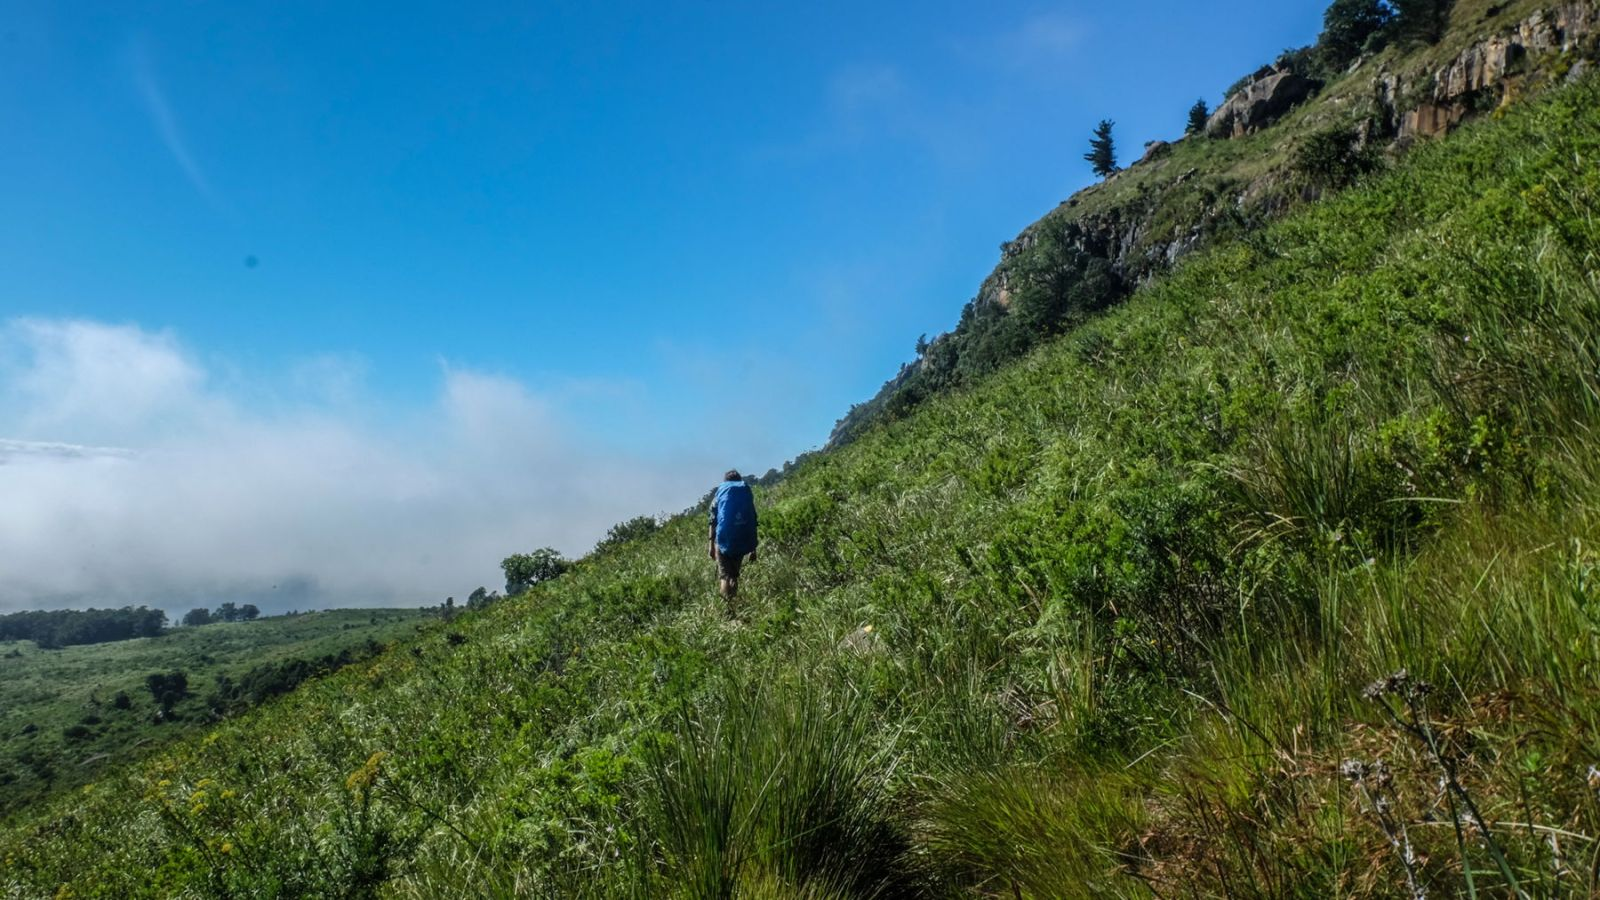 a photo of a hiker walking on the amathole hiking trail.